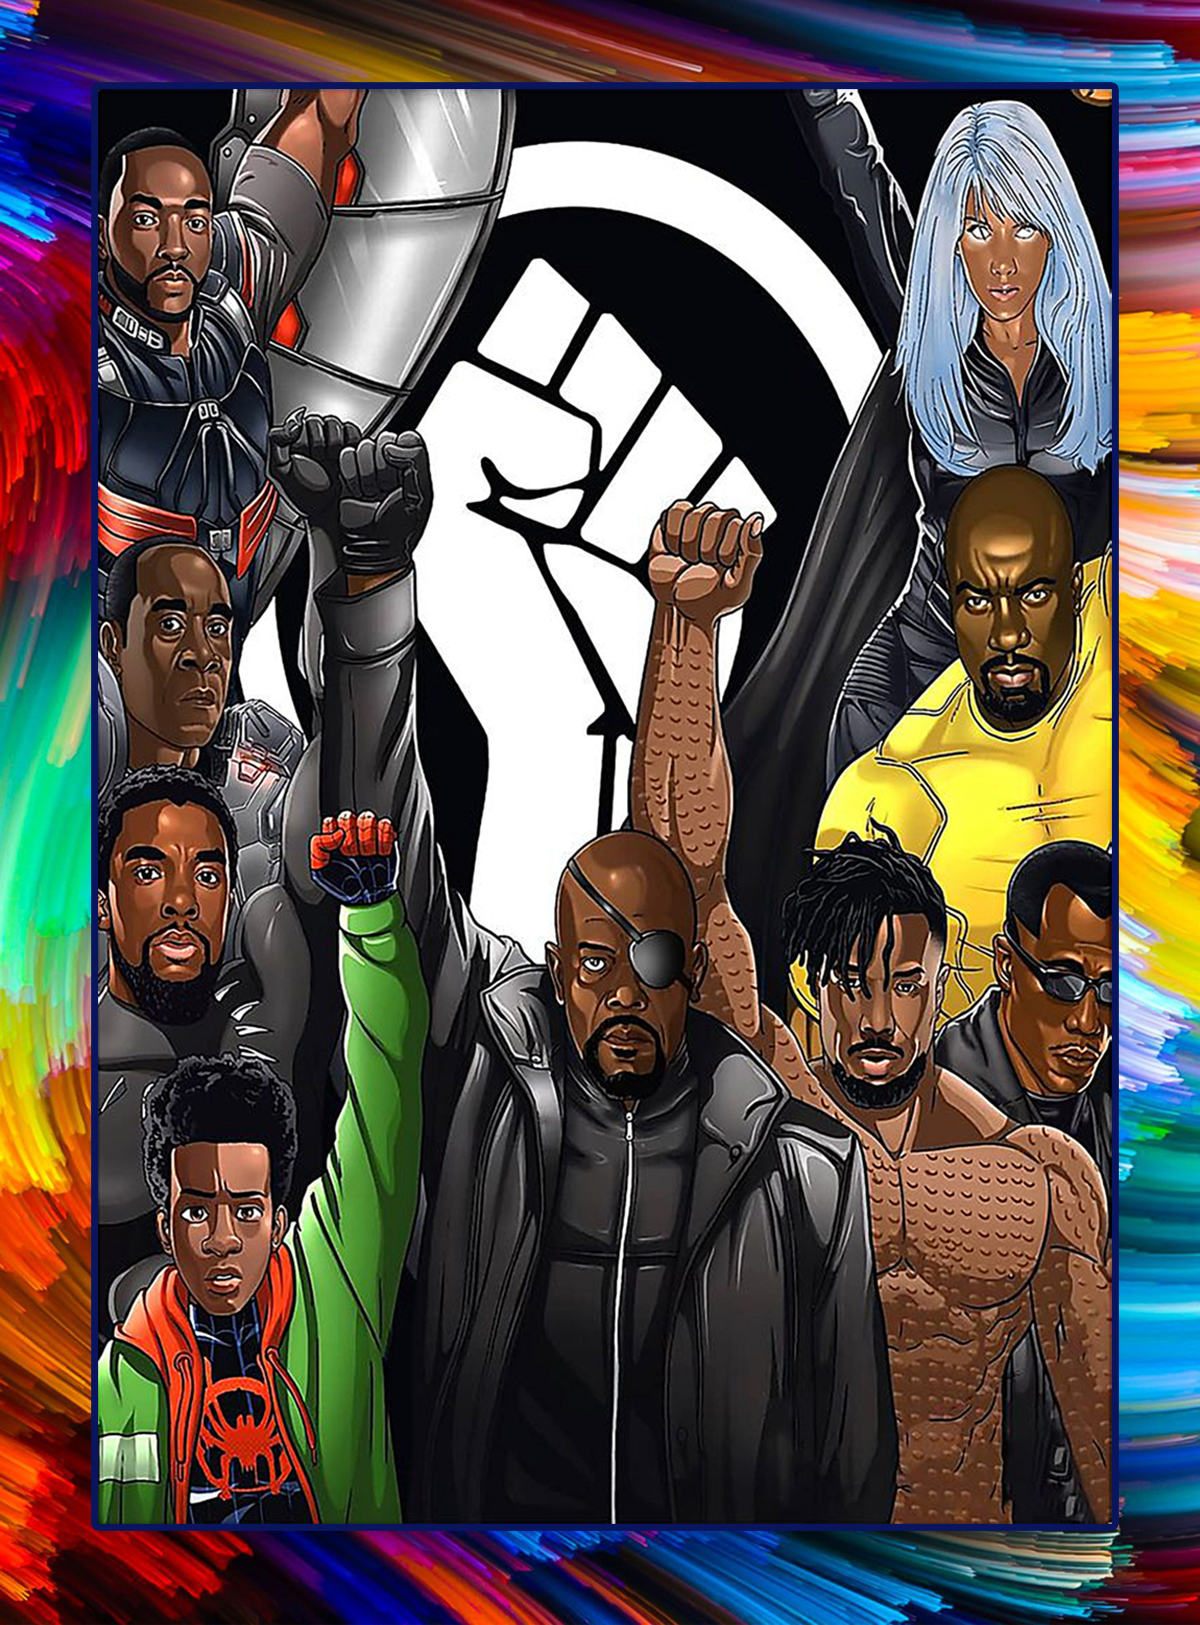 Black superheroes raised fist black power poster - A1